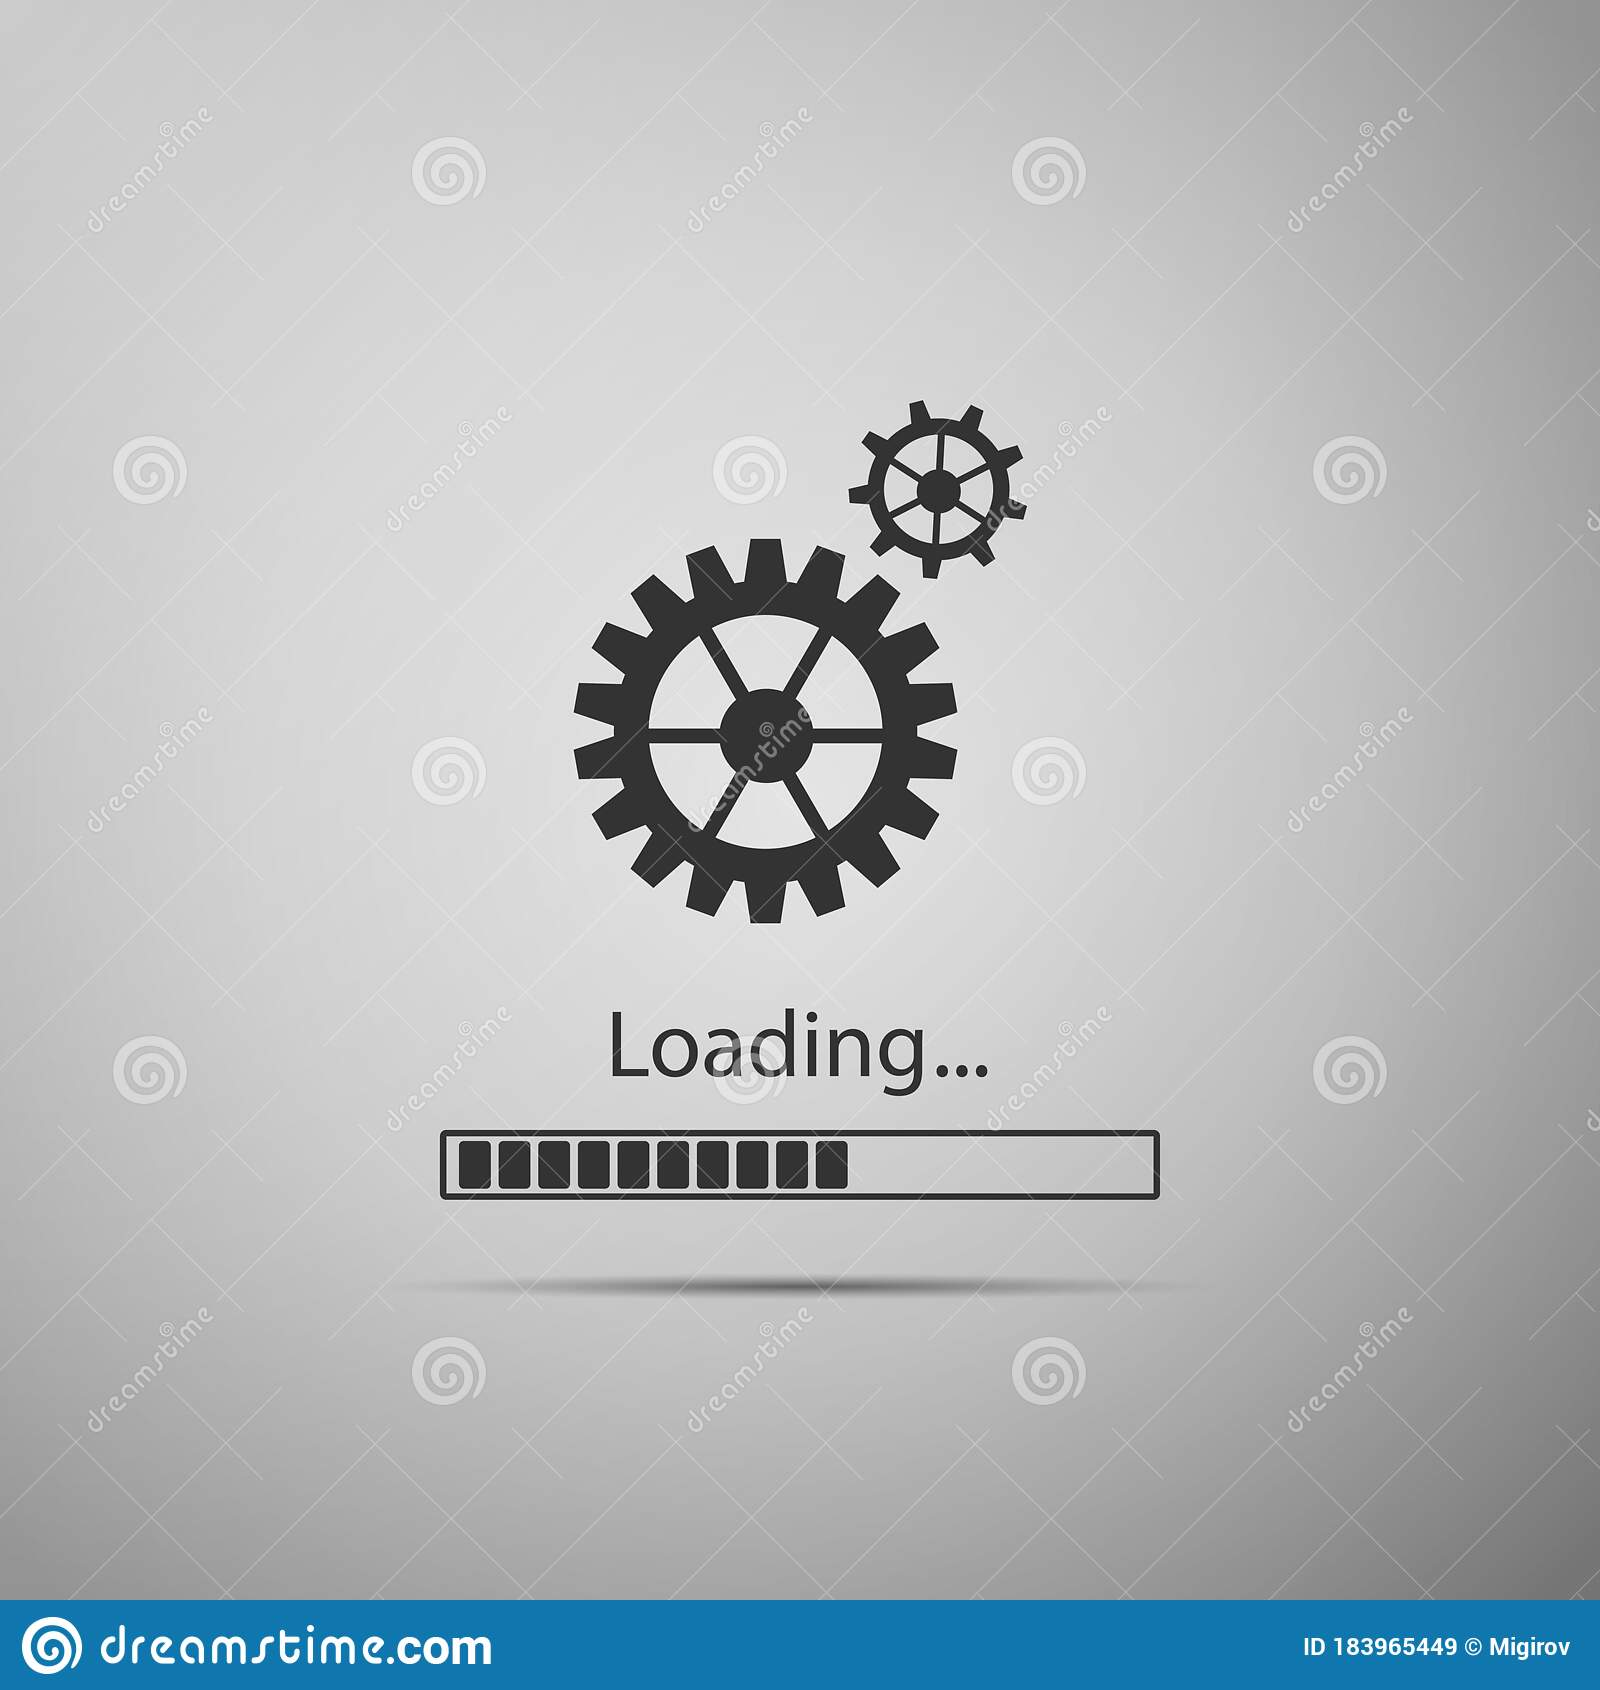 Loading And Gear Icon Isolated On Grey Background Progress Bar Icon System Software Update Loading Process Symbol Stock Vector Illustration Of Bright Buffering 183965449